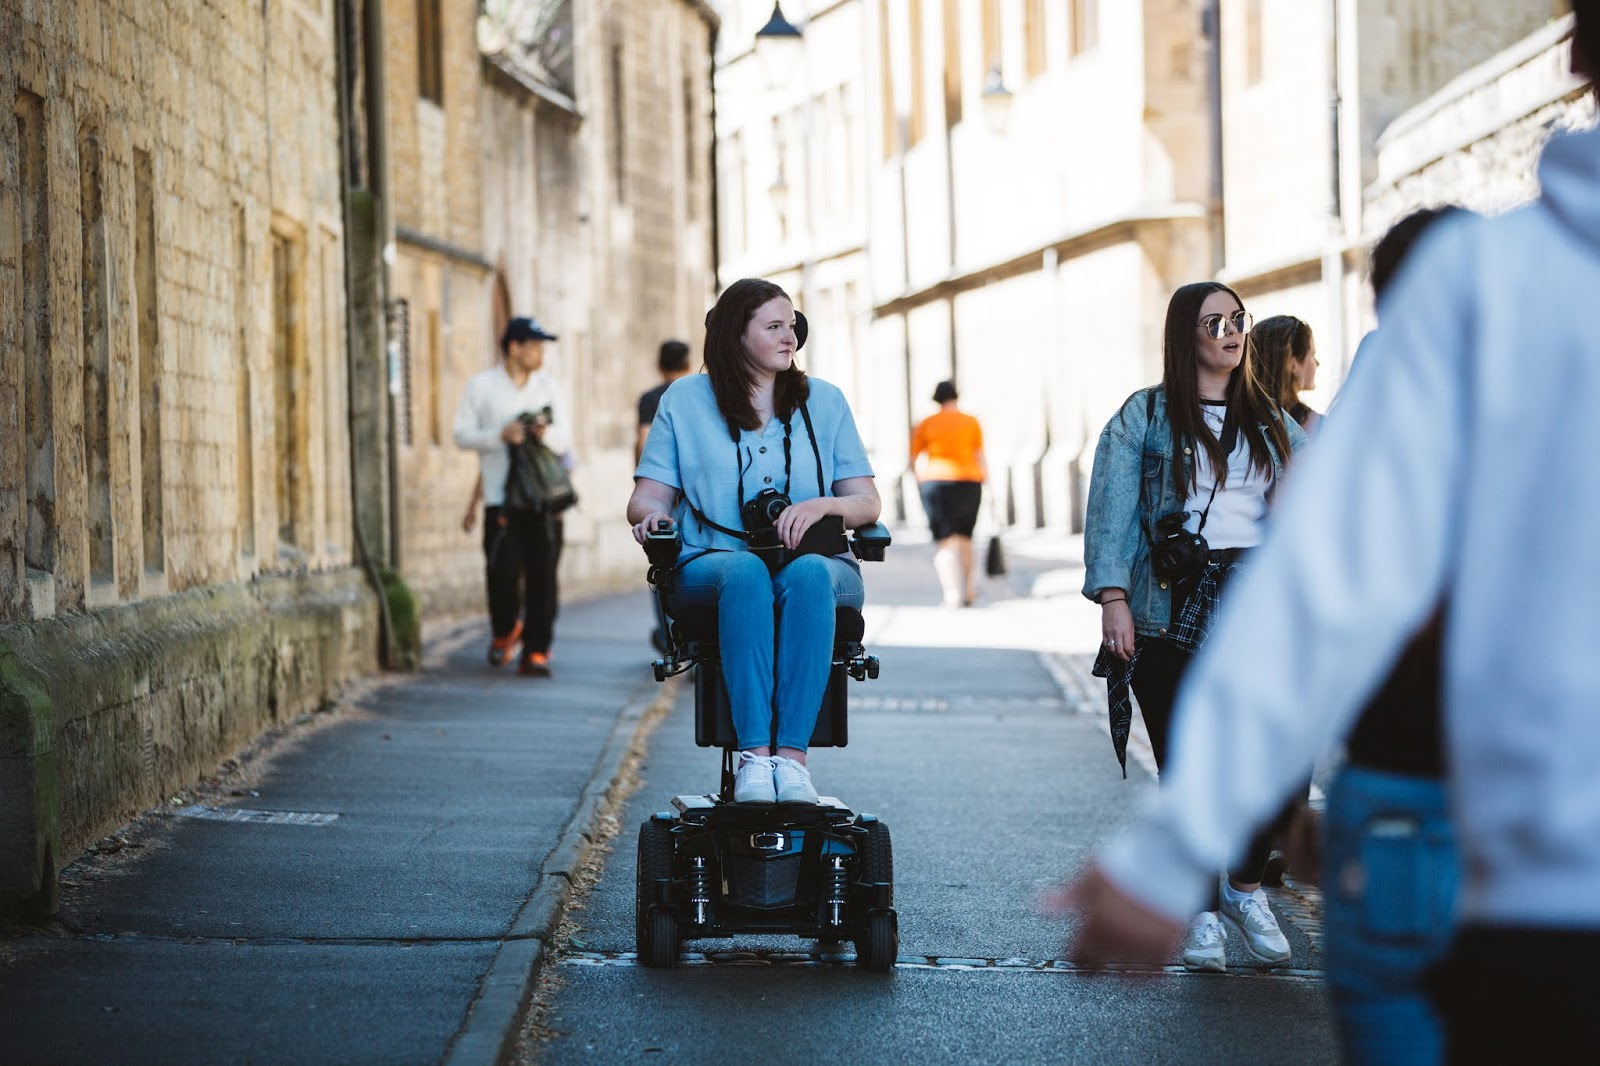 Shona, a powerchair user, is elevated in her powerchair and wheeling down a street amongst other people.